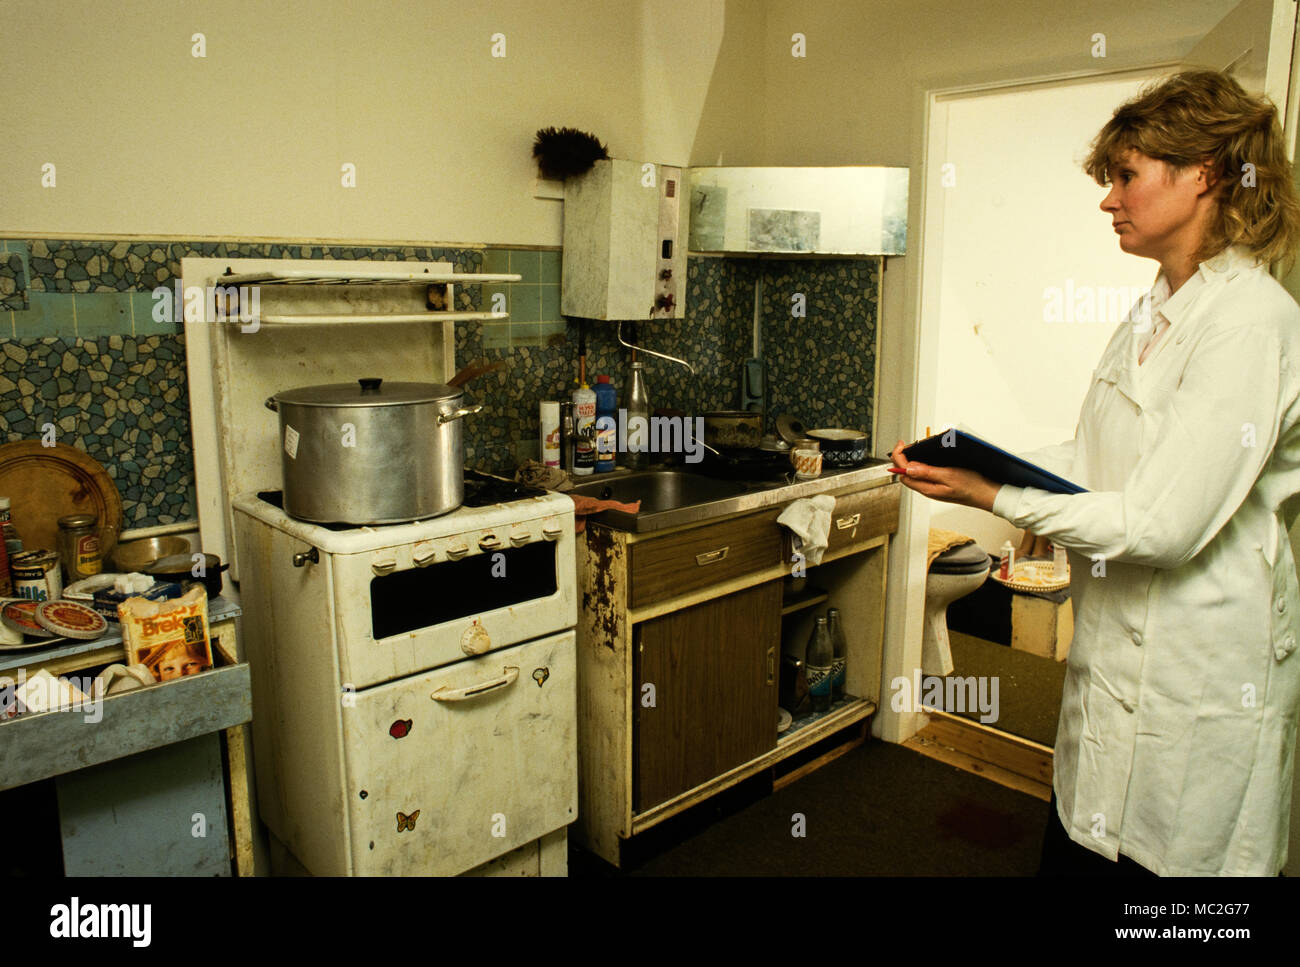 Dennis Nilsen Mass Murderer High Resolution Stock Photography And Images Alamy